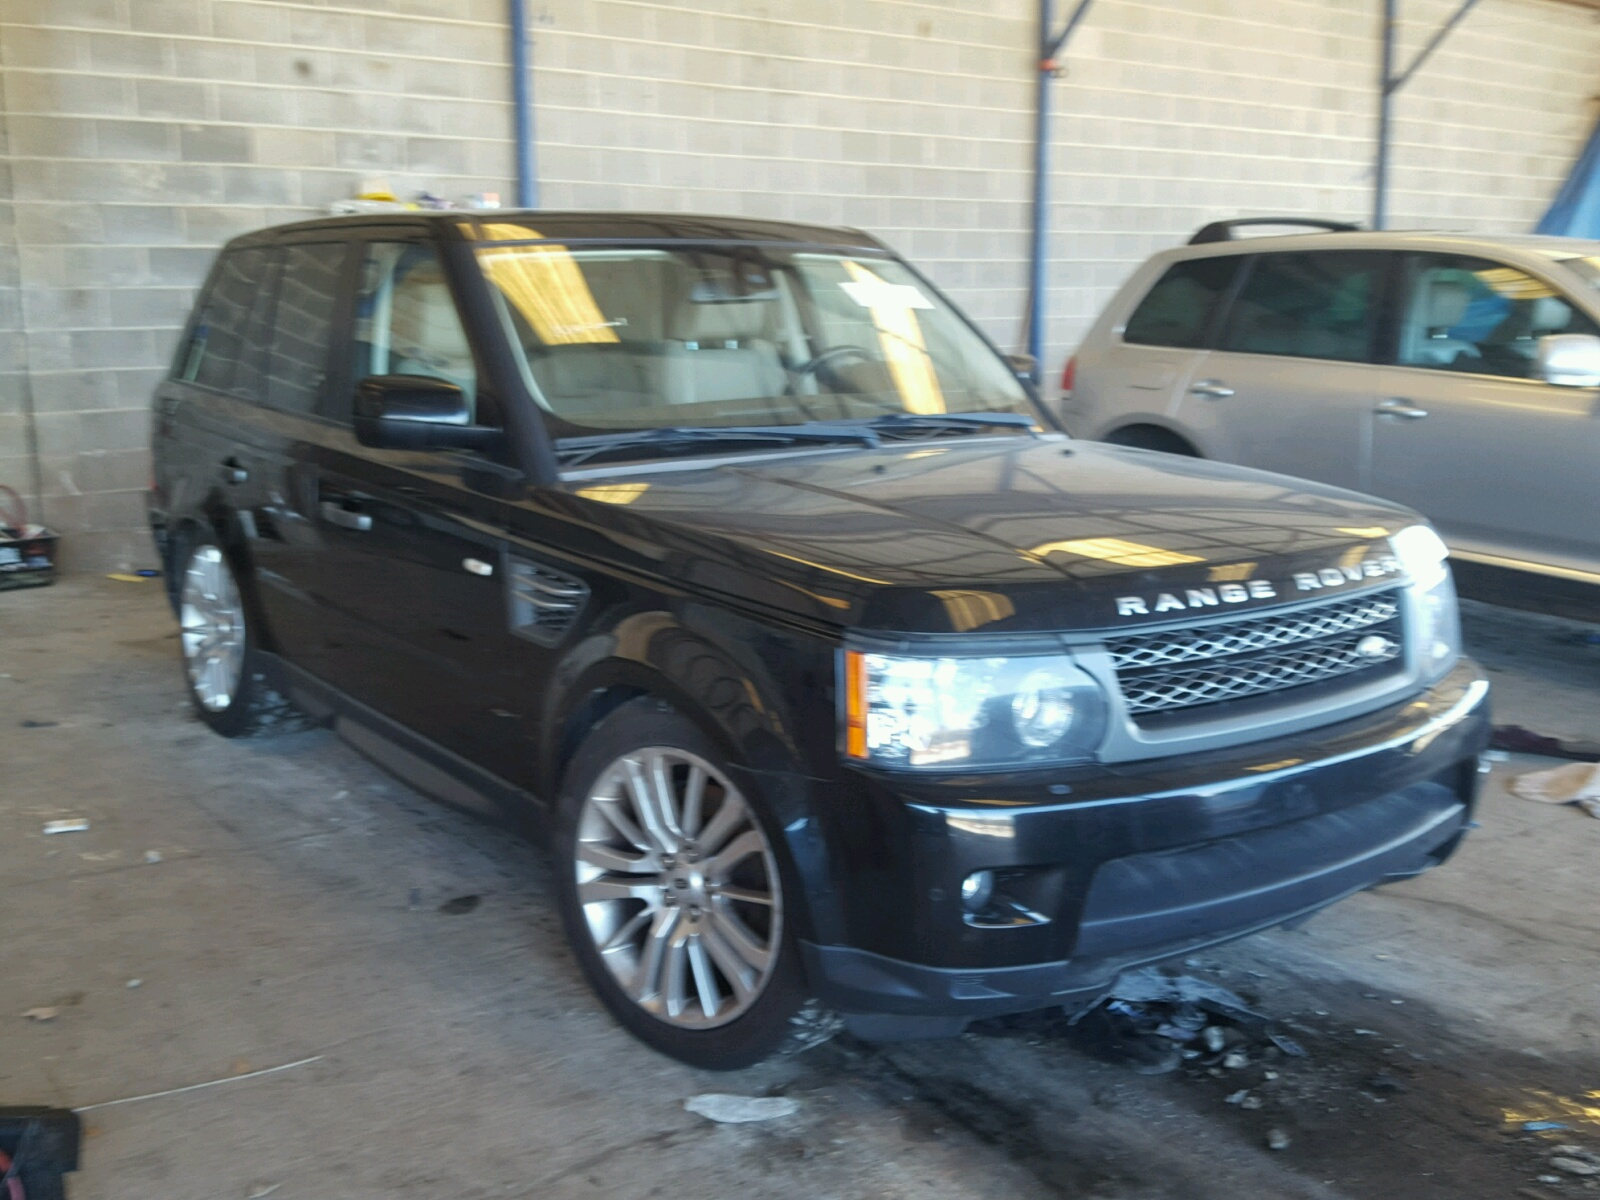 right title lot auto sale view land eugene or auction rover on for en copart auctions certificate vin carfinder salvage hse ended online landrover